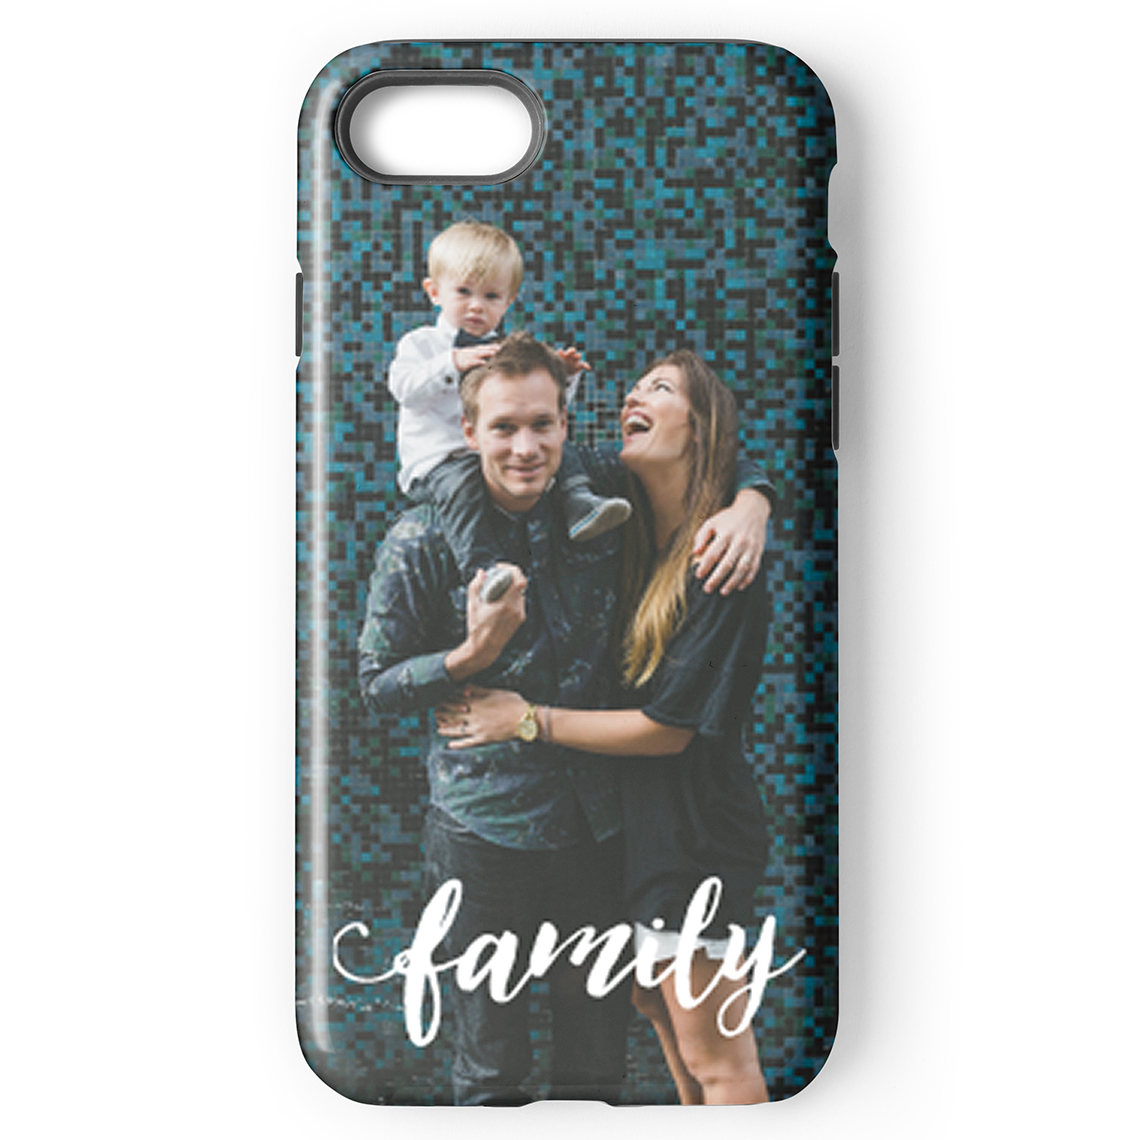 photo phone cases custom phone cases photo phone covers snapfish